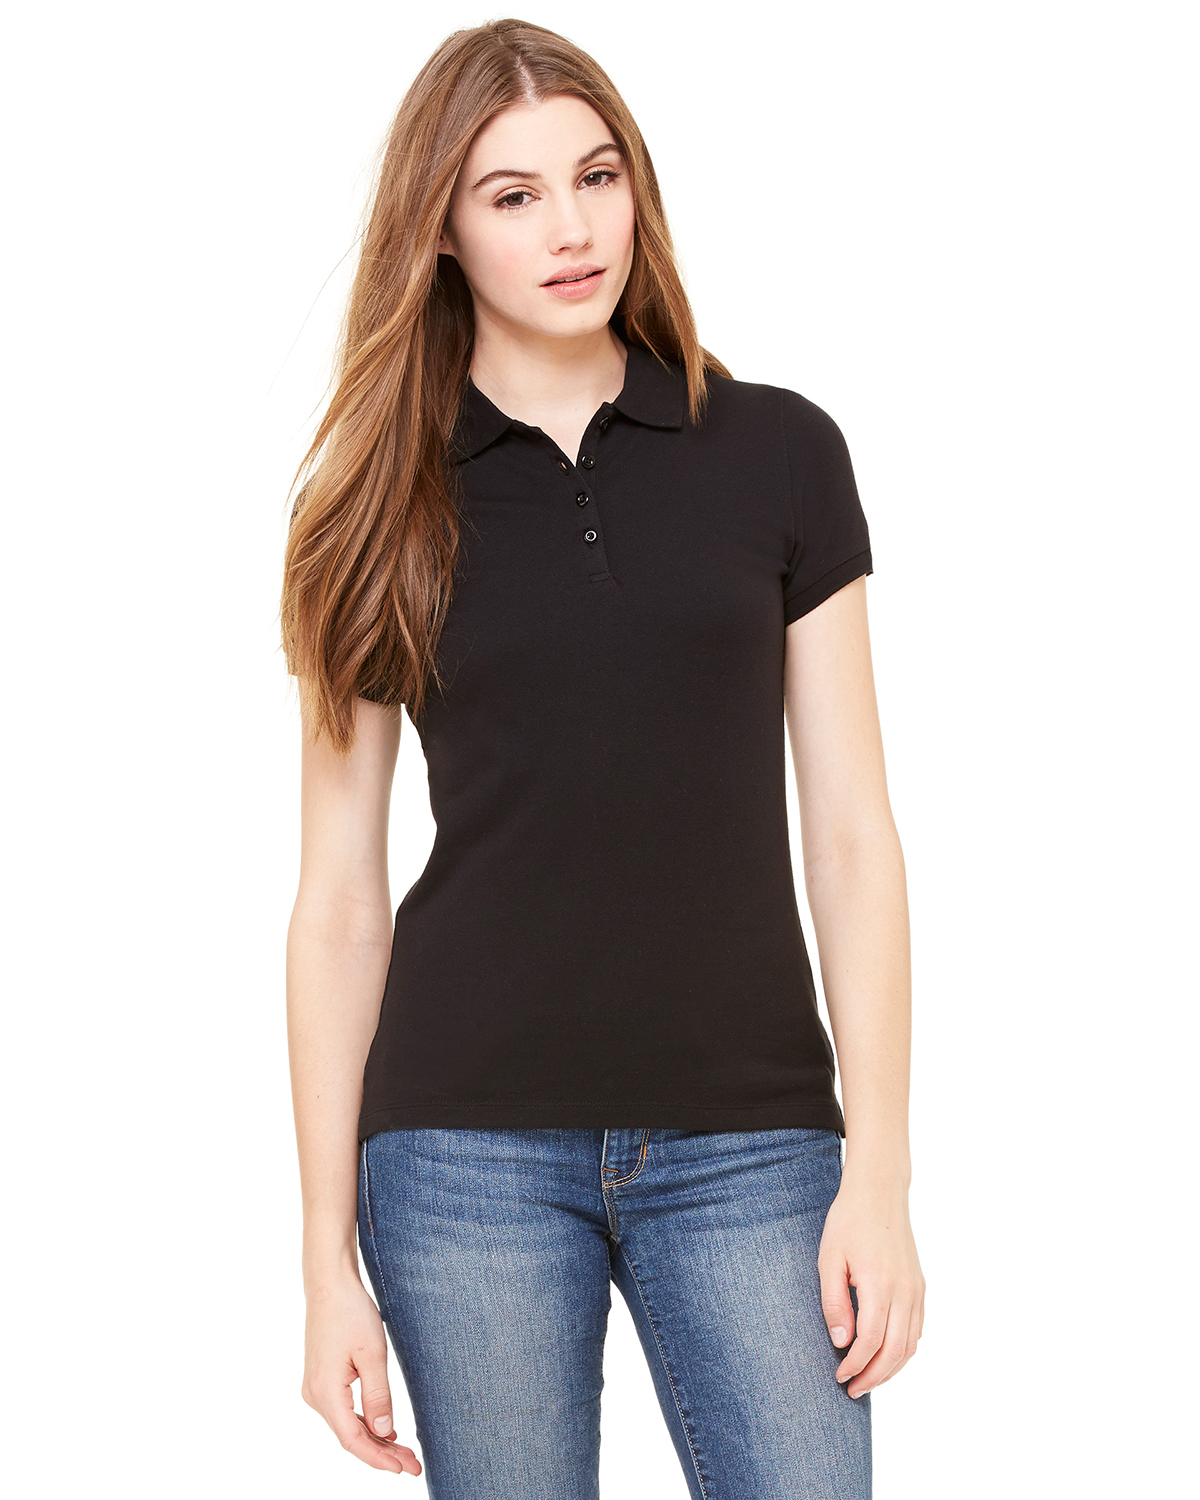 Bella B750  Women's Mini Pique Polo